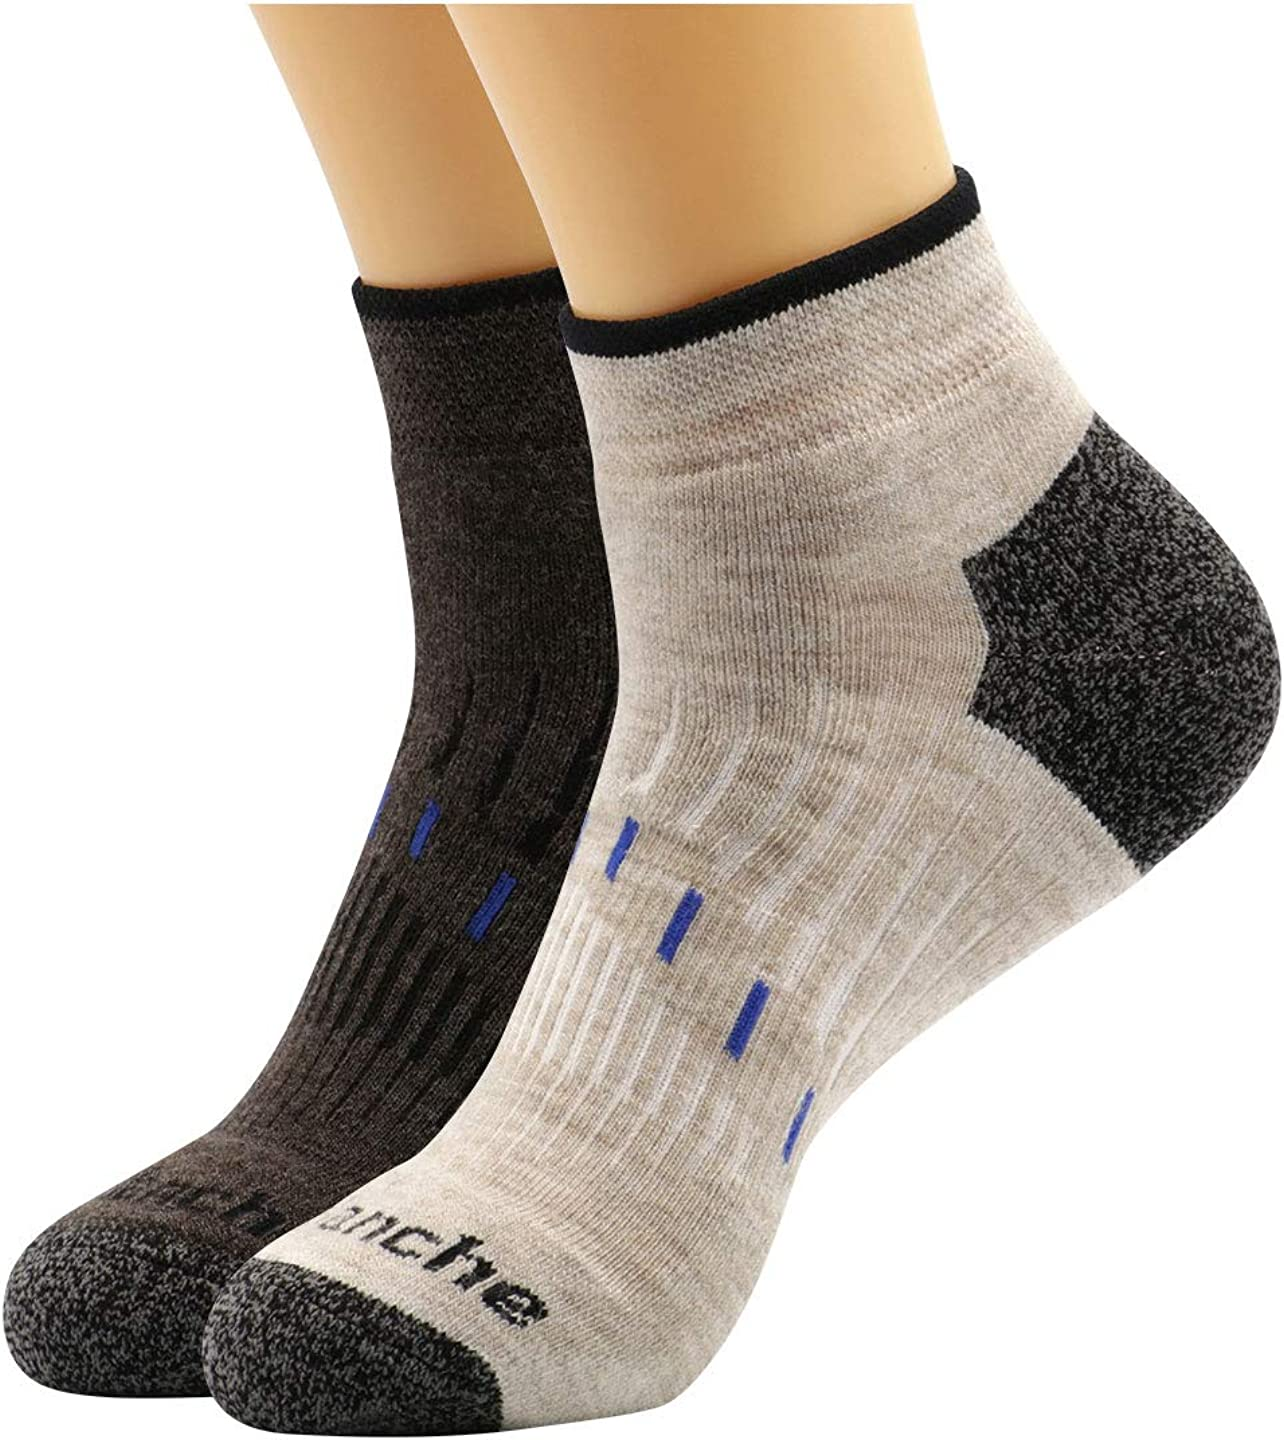 Avalanche Men's Quick Drying Merino Wool Blend Low Cut Socks With Arch Support 2-Pack